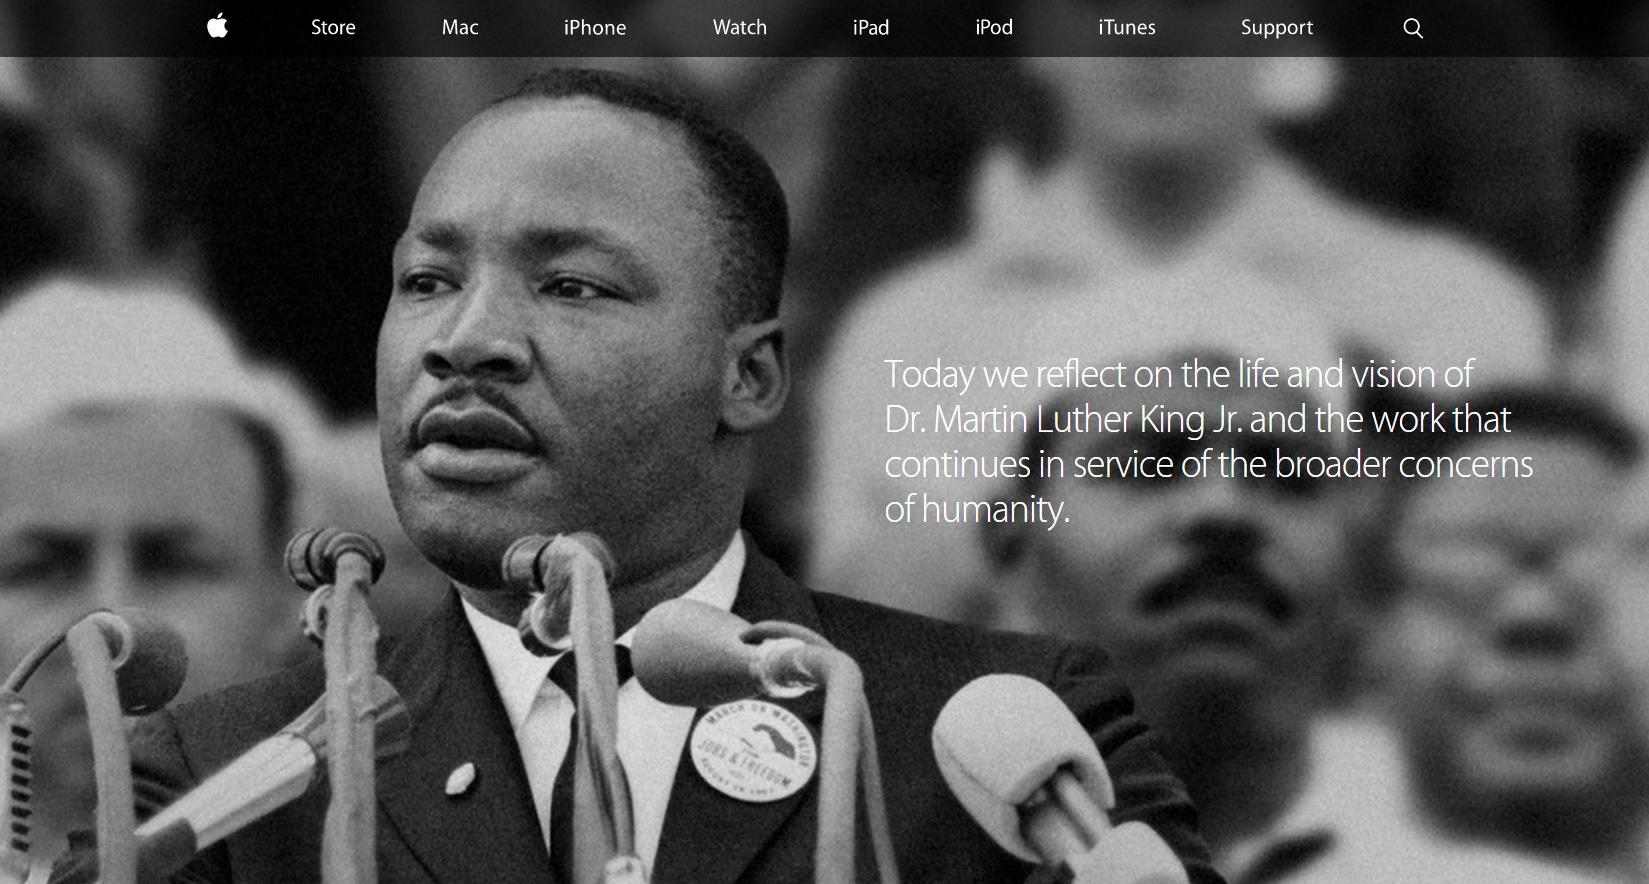 Apple Pays Tribute to Martin Luther King Jr. on its Homepage